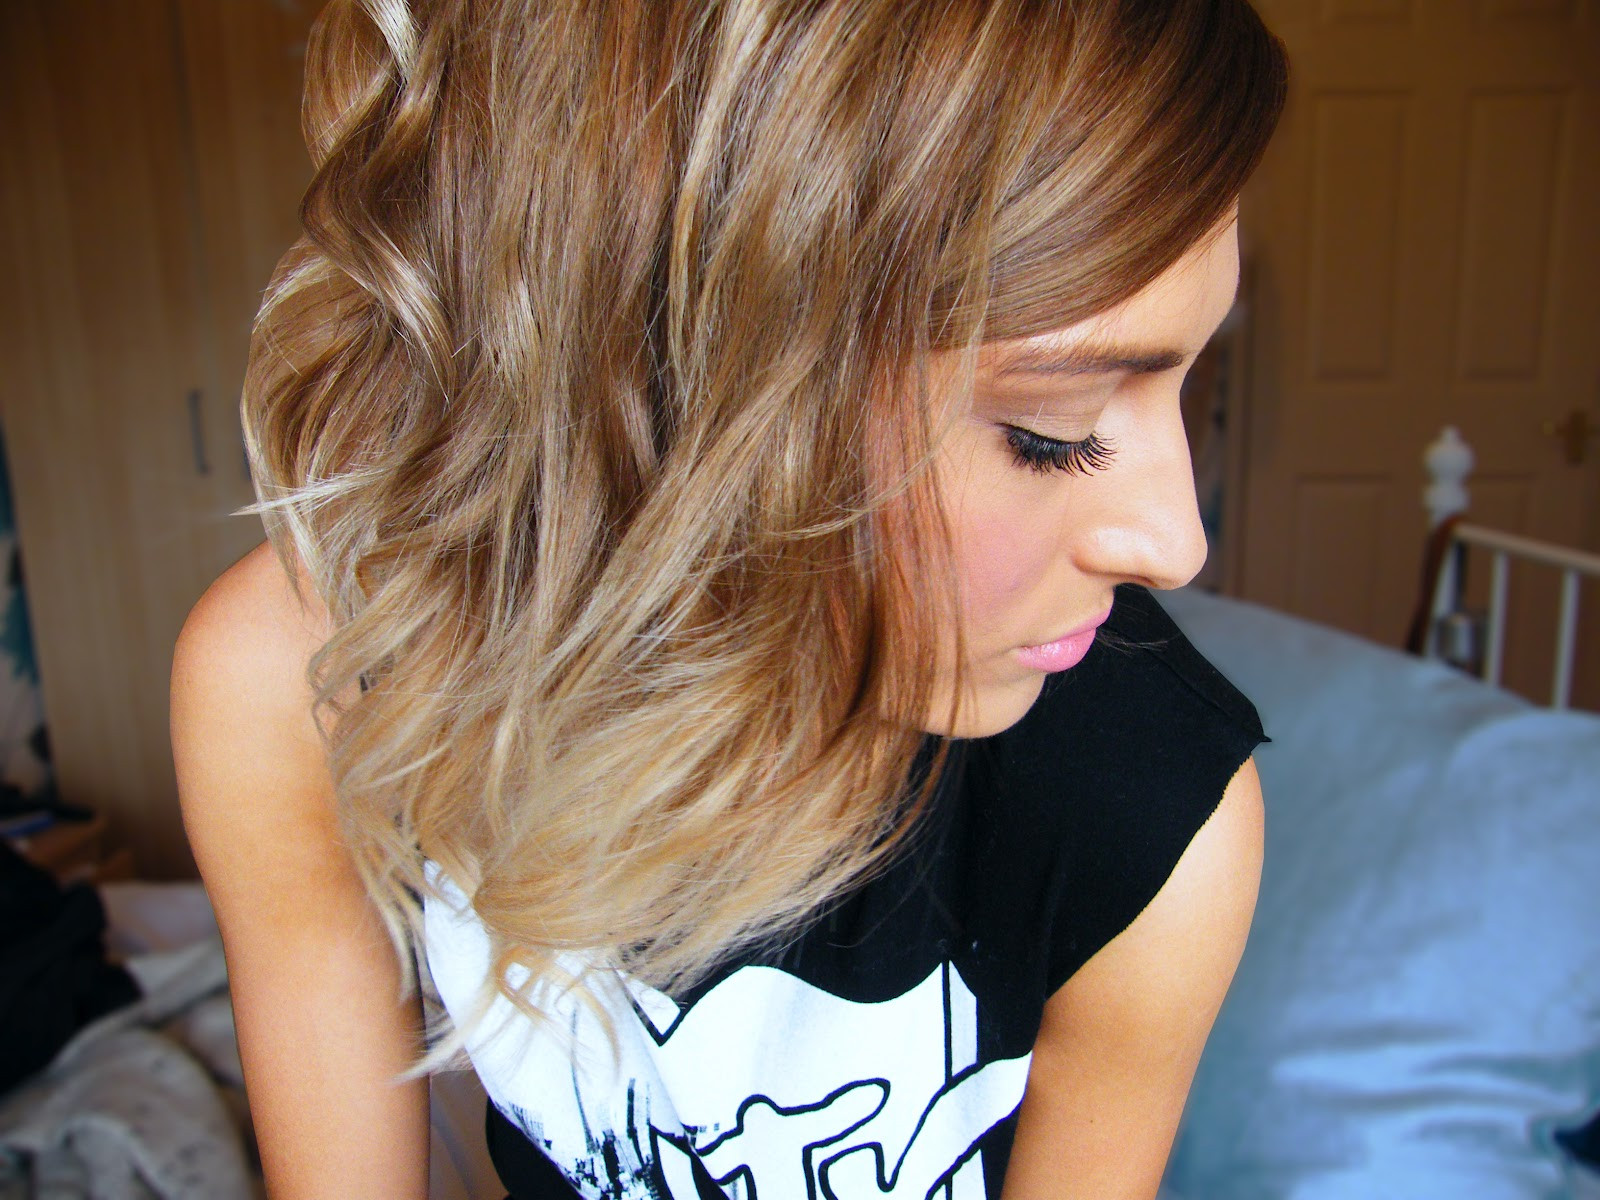 Best ideas about Short Hair Ombre DIY . Save or Pin Balayage vs Ombre Hair 20 Beautiful Styles Now.